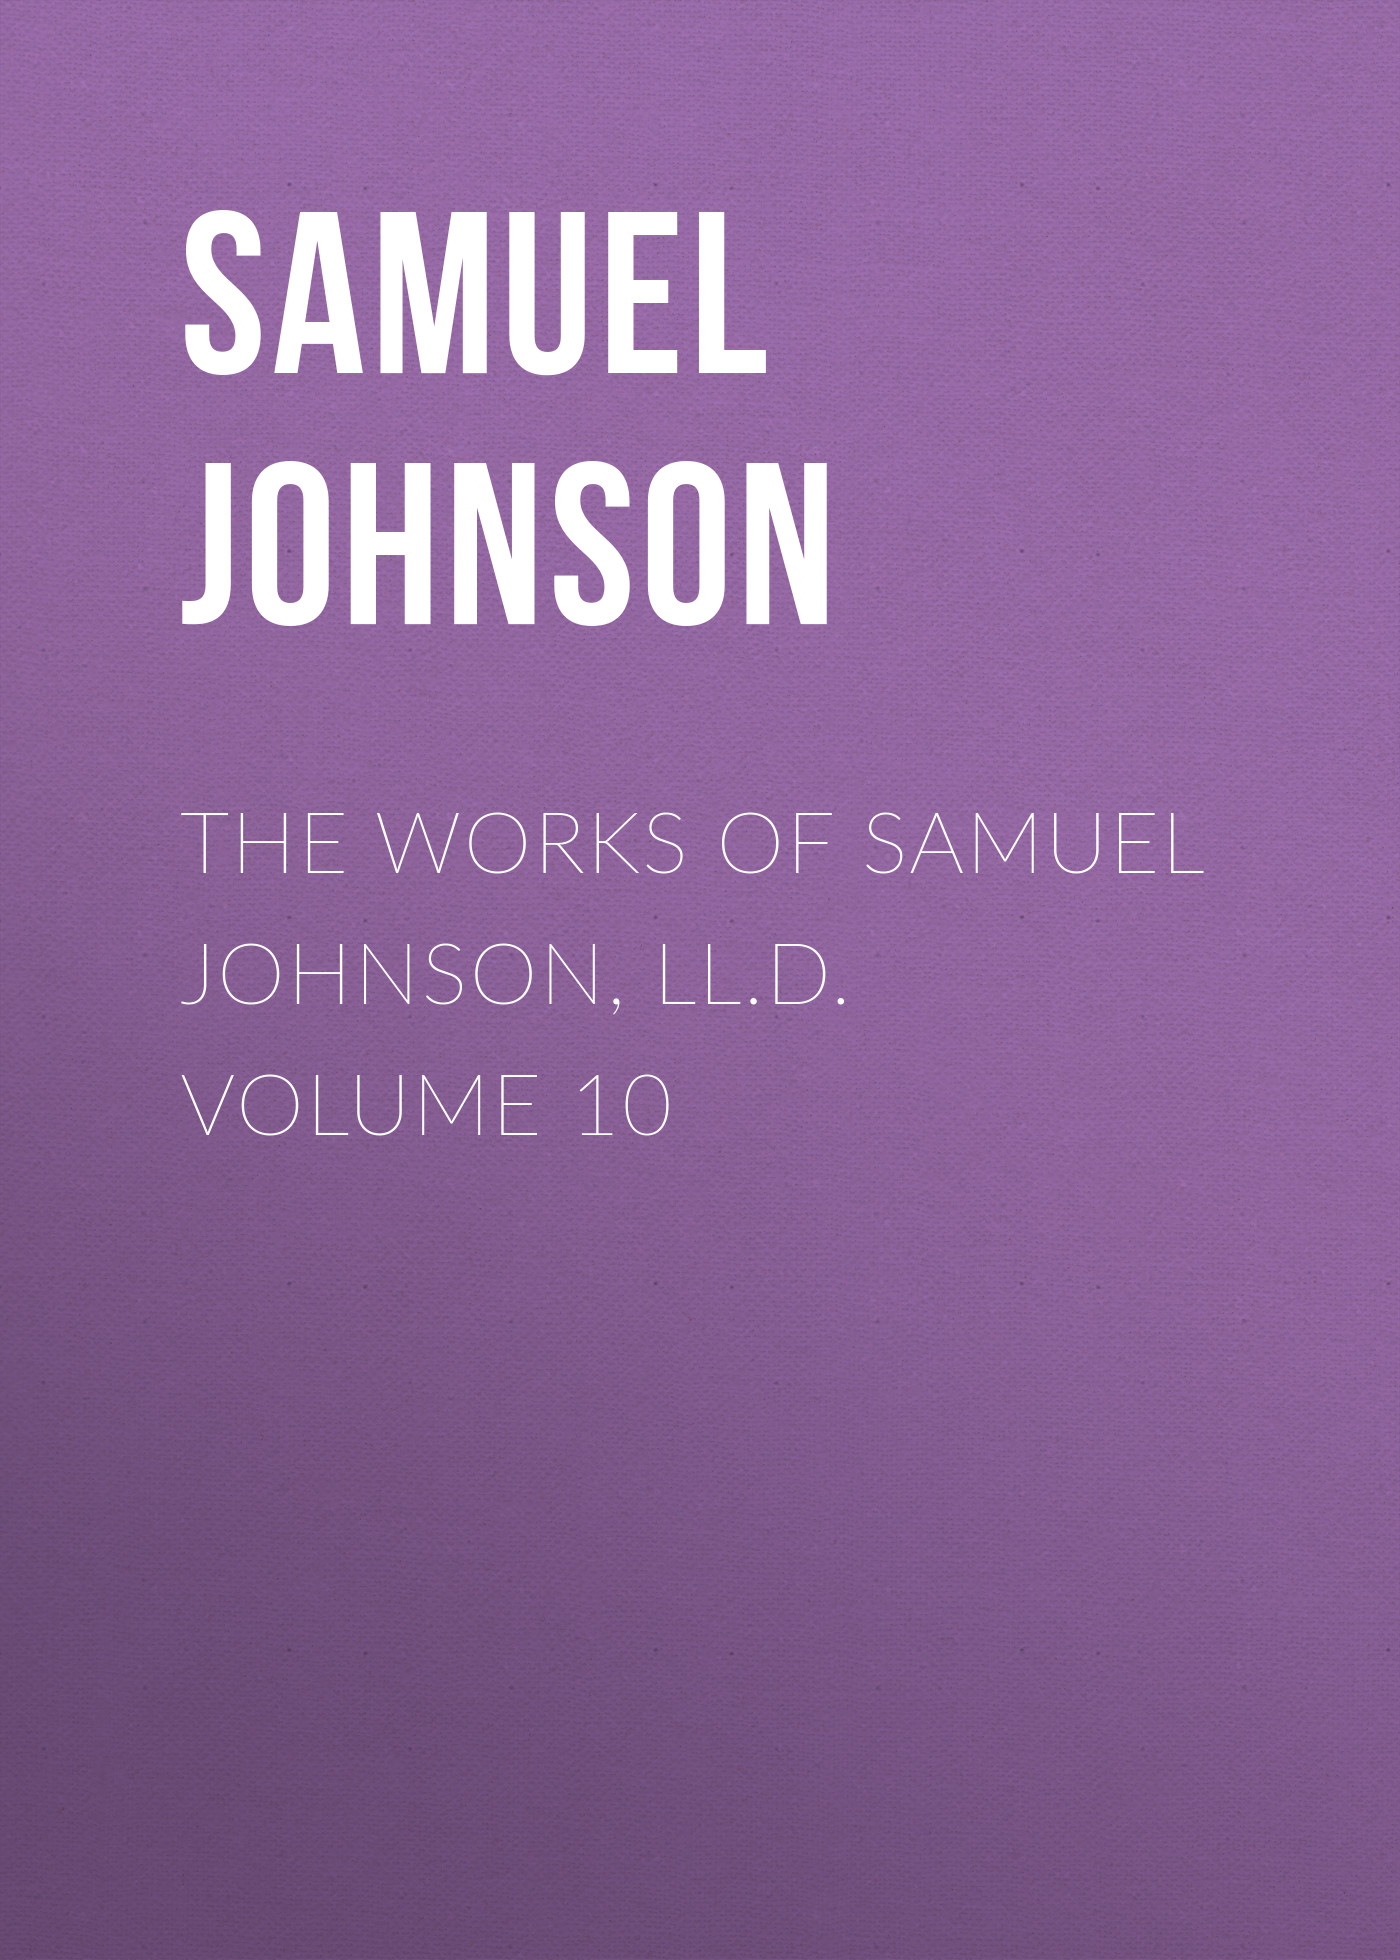 цена на Samuel Johnson The Works of Samuel Johnson, LL.D. Volume 10